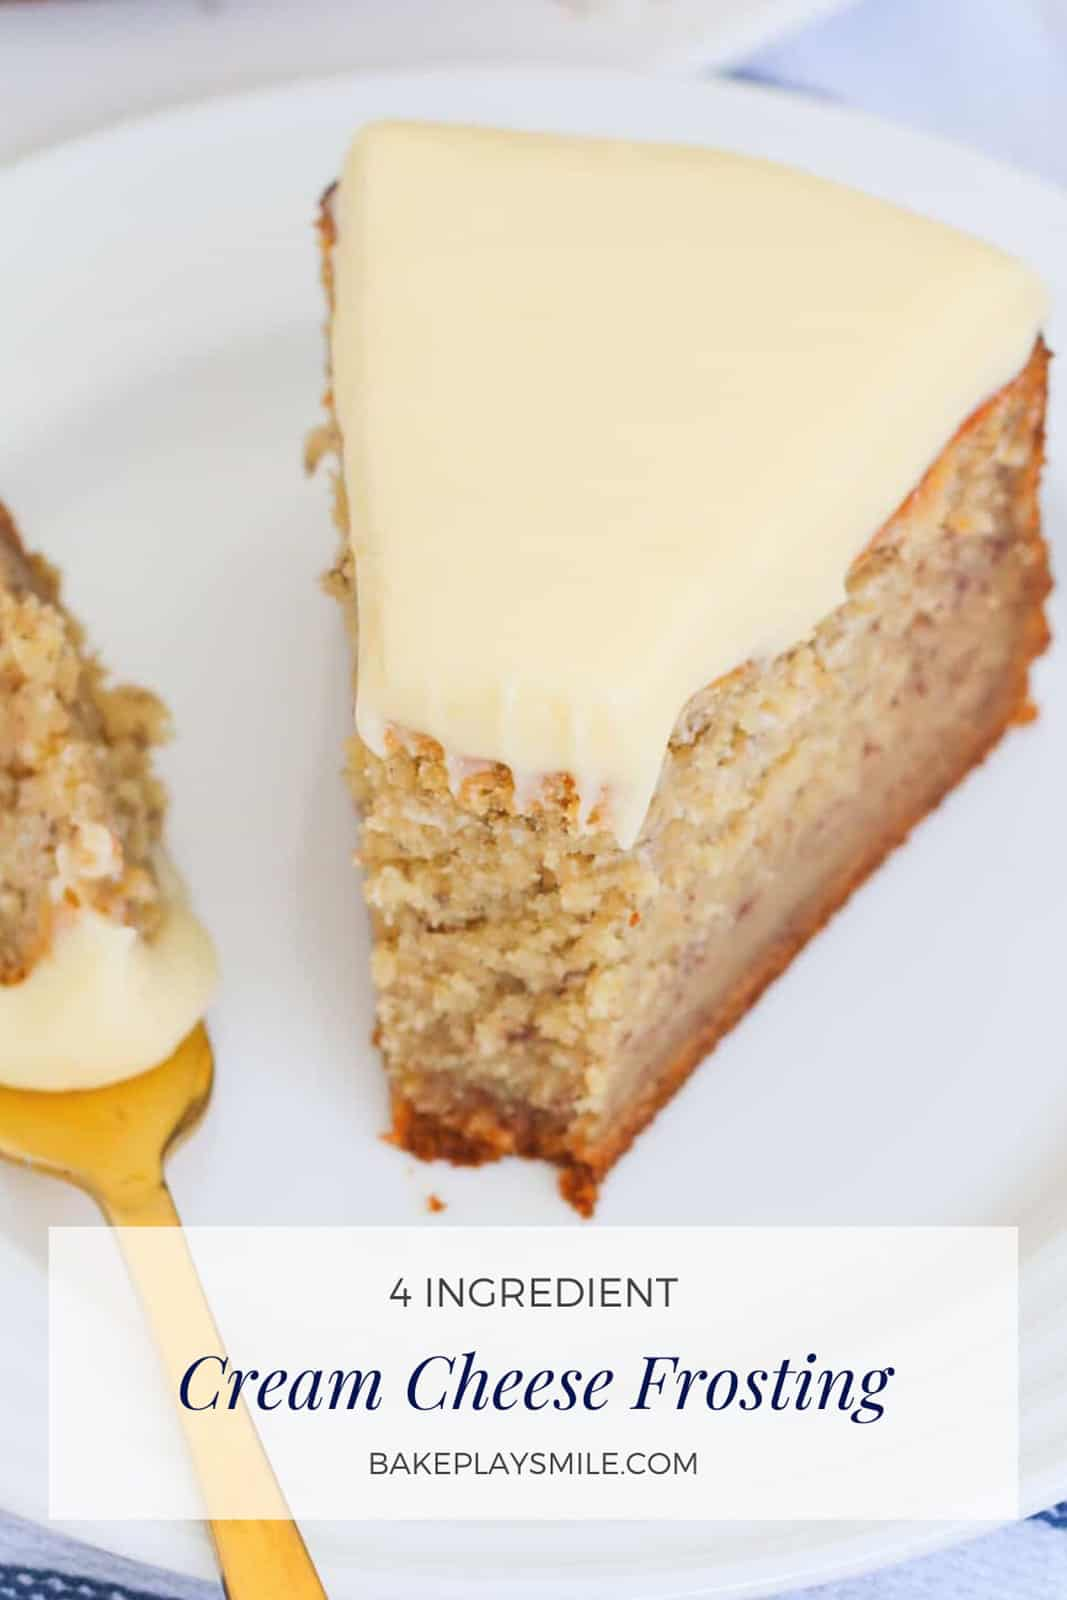 A Pinterest image of a serve of banana cake with cream cheese frosting, with the text overlay 'The BEST Cream Cheese Frosting'